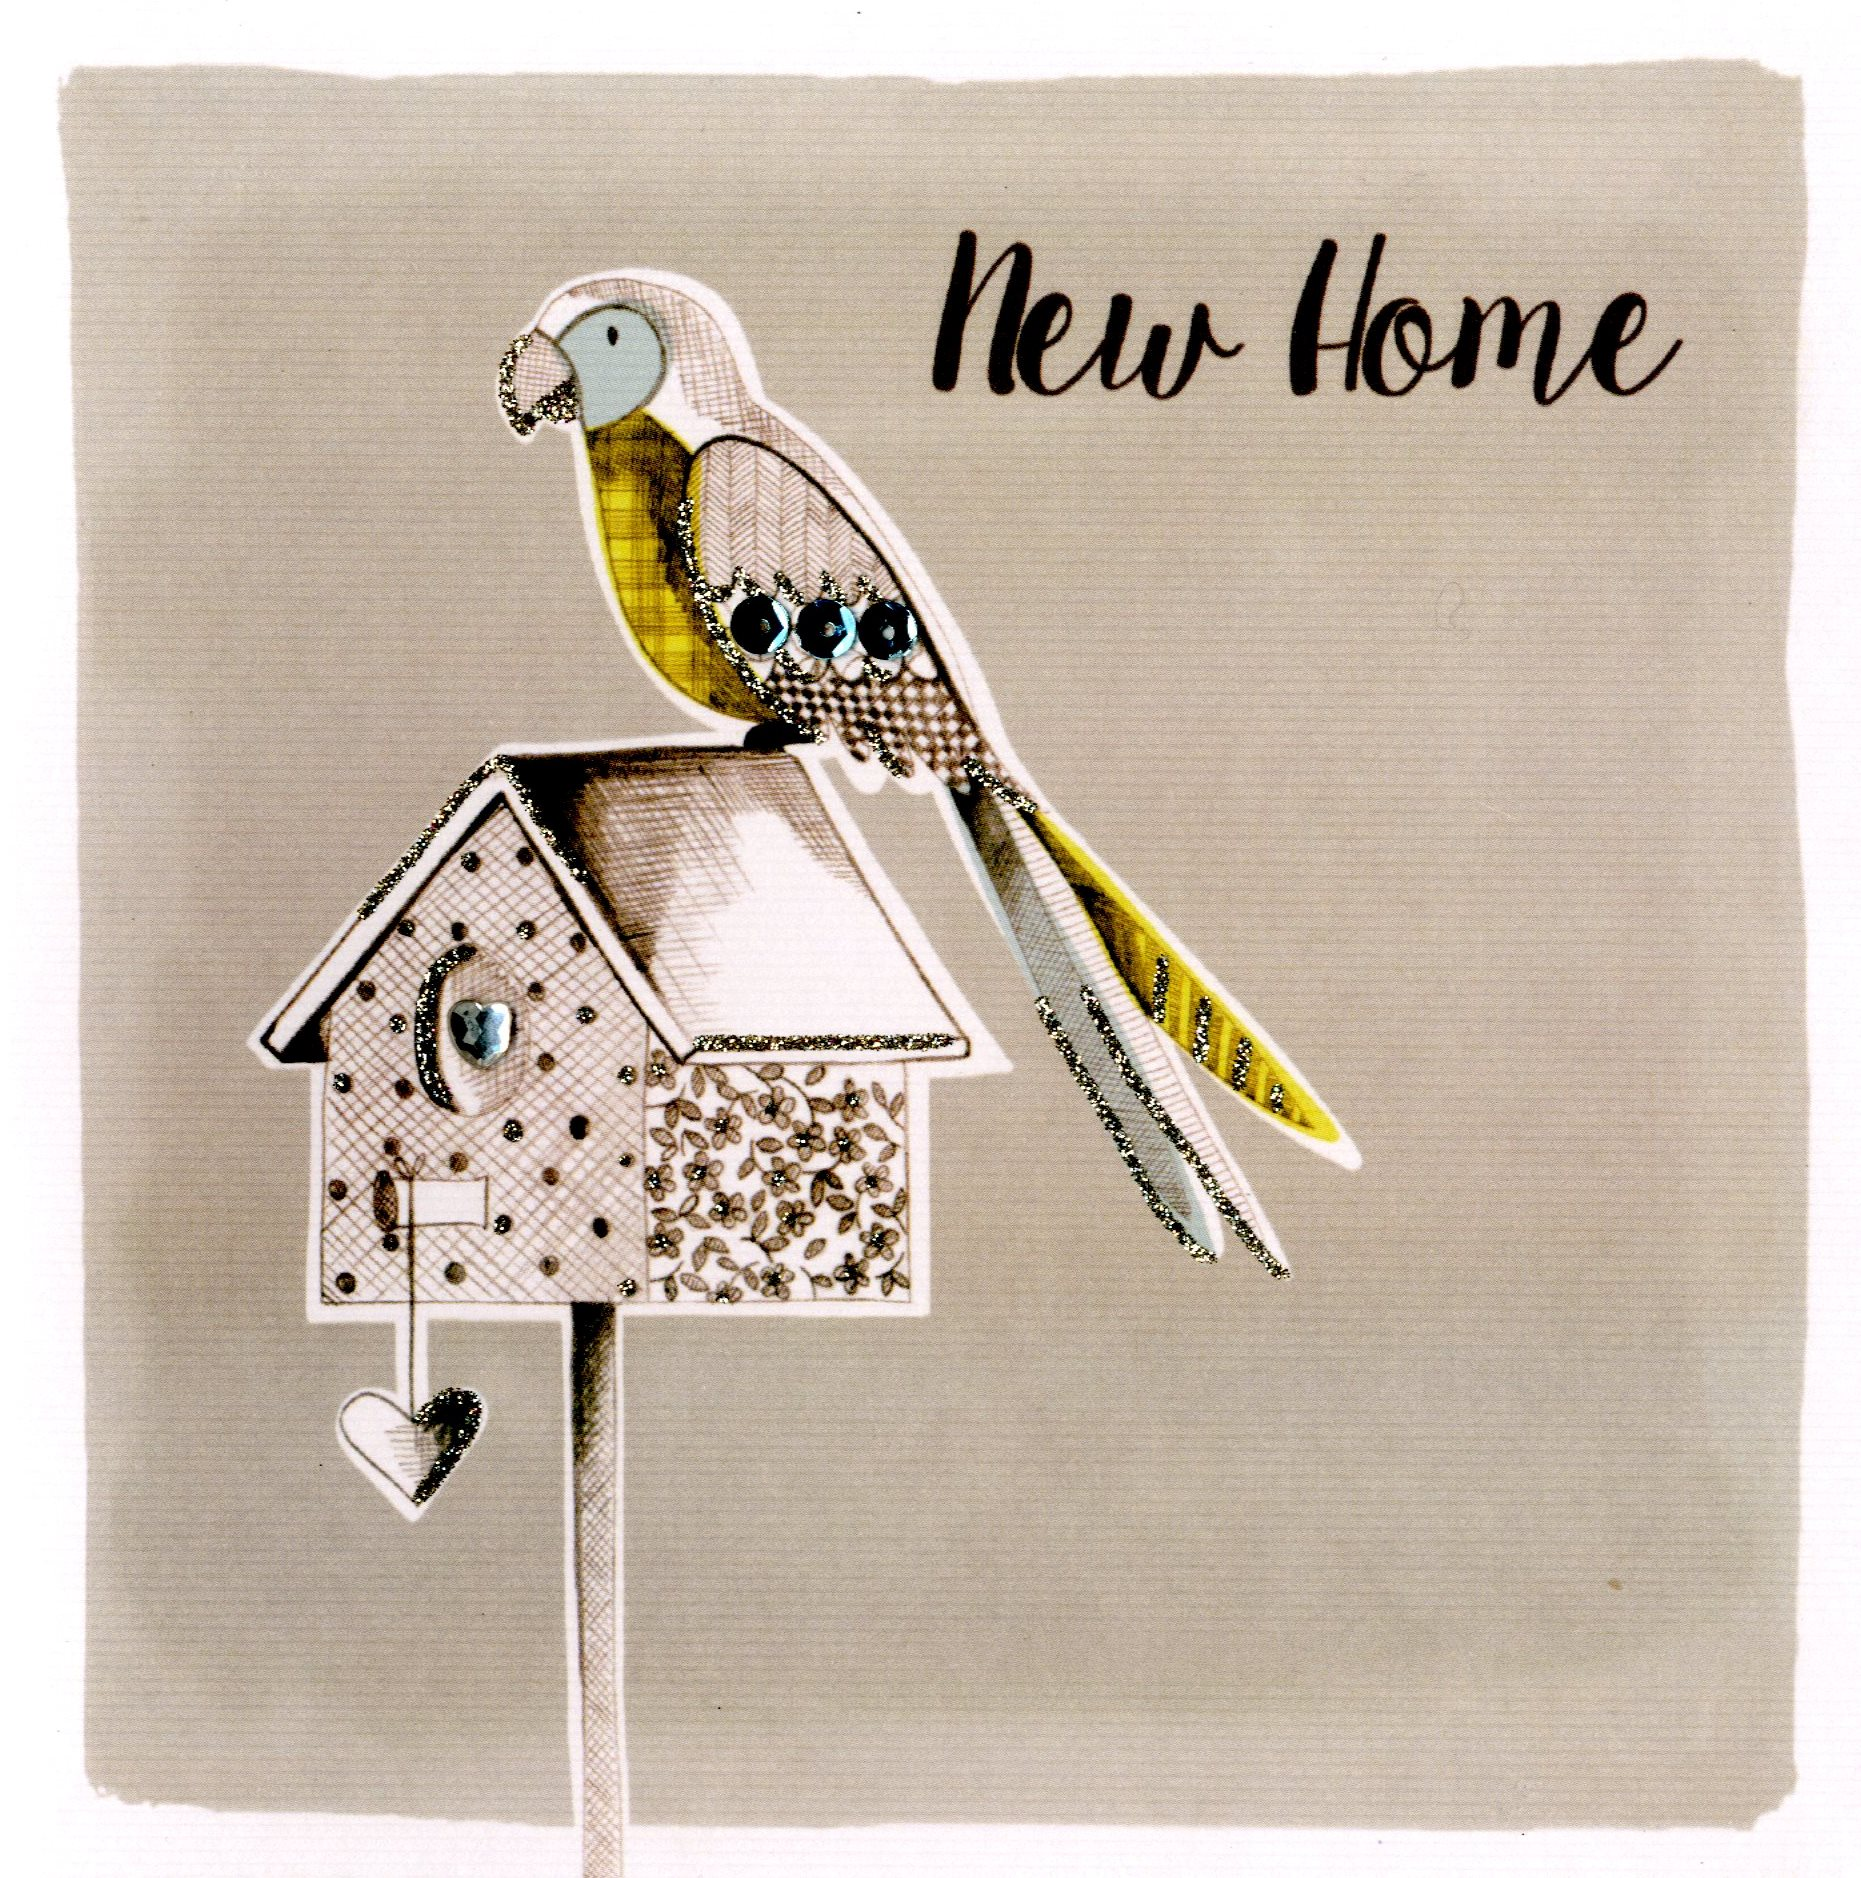 New home embellished greeting card cards love kates new home embellished greeting card kristyandbryce Image collections